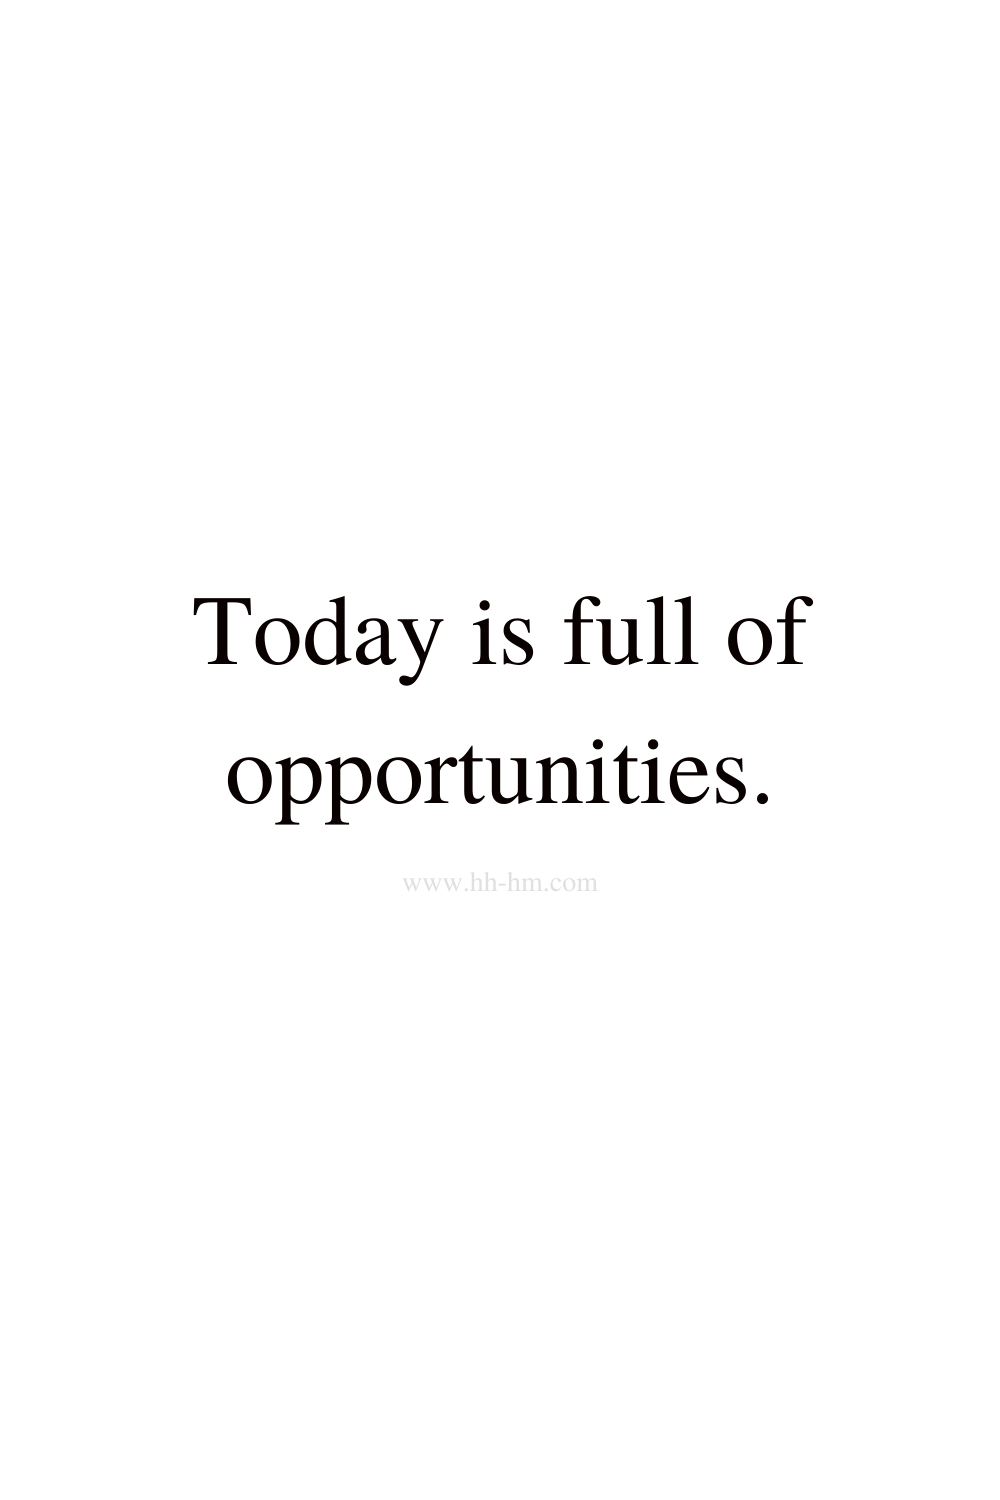 today is full of opportunities - positive affirmations to say in the morning